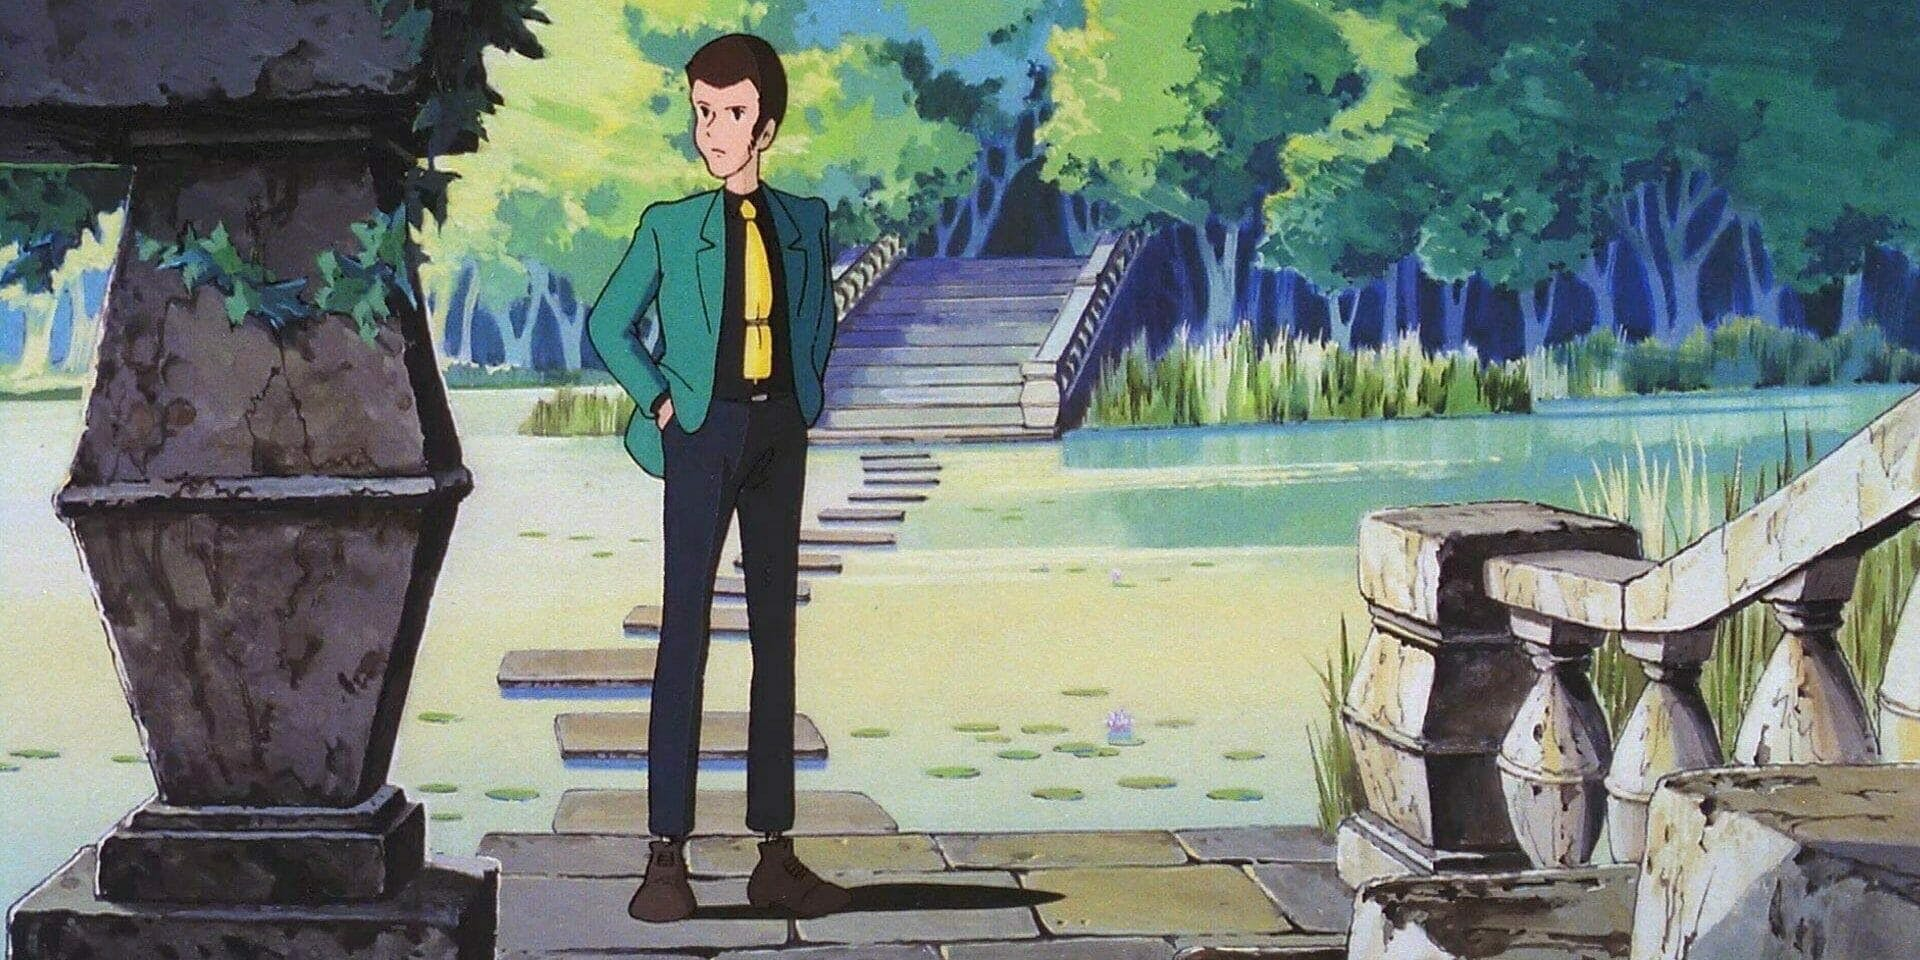 anime movies on netflix - castle of cagliostro